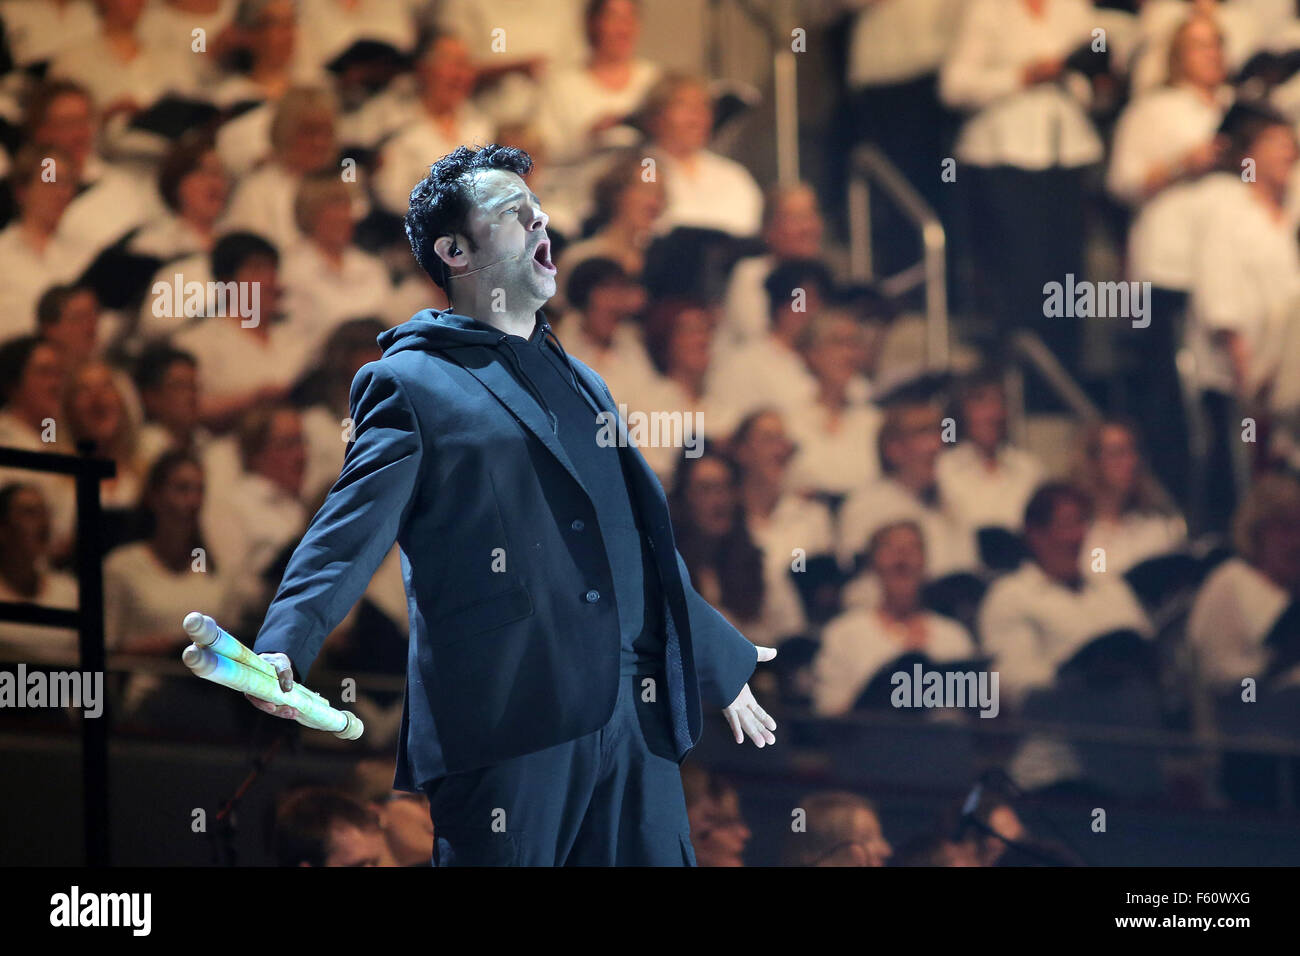 The Christian pop oratorio 'Luther' (Martin Luther played by actor Frank Winkels) has been performed for - Stock Image